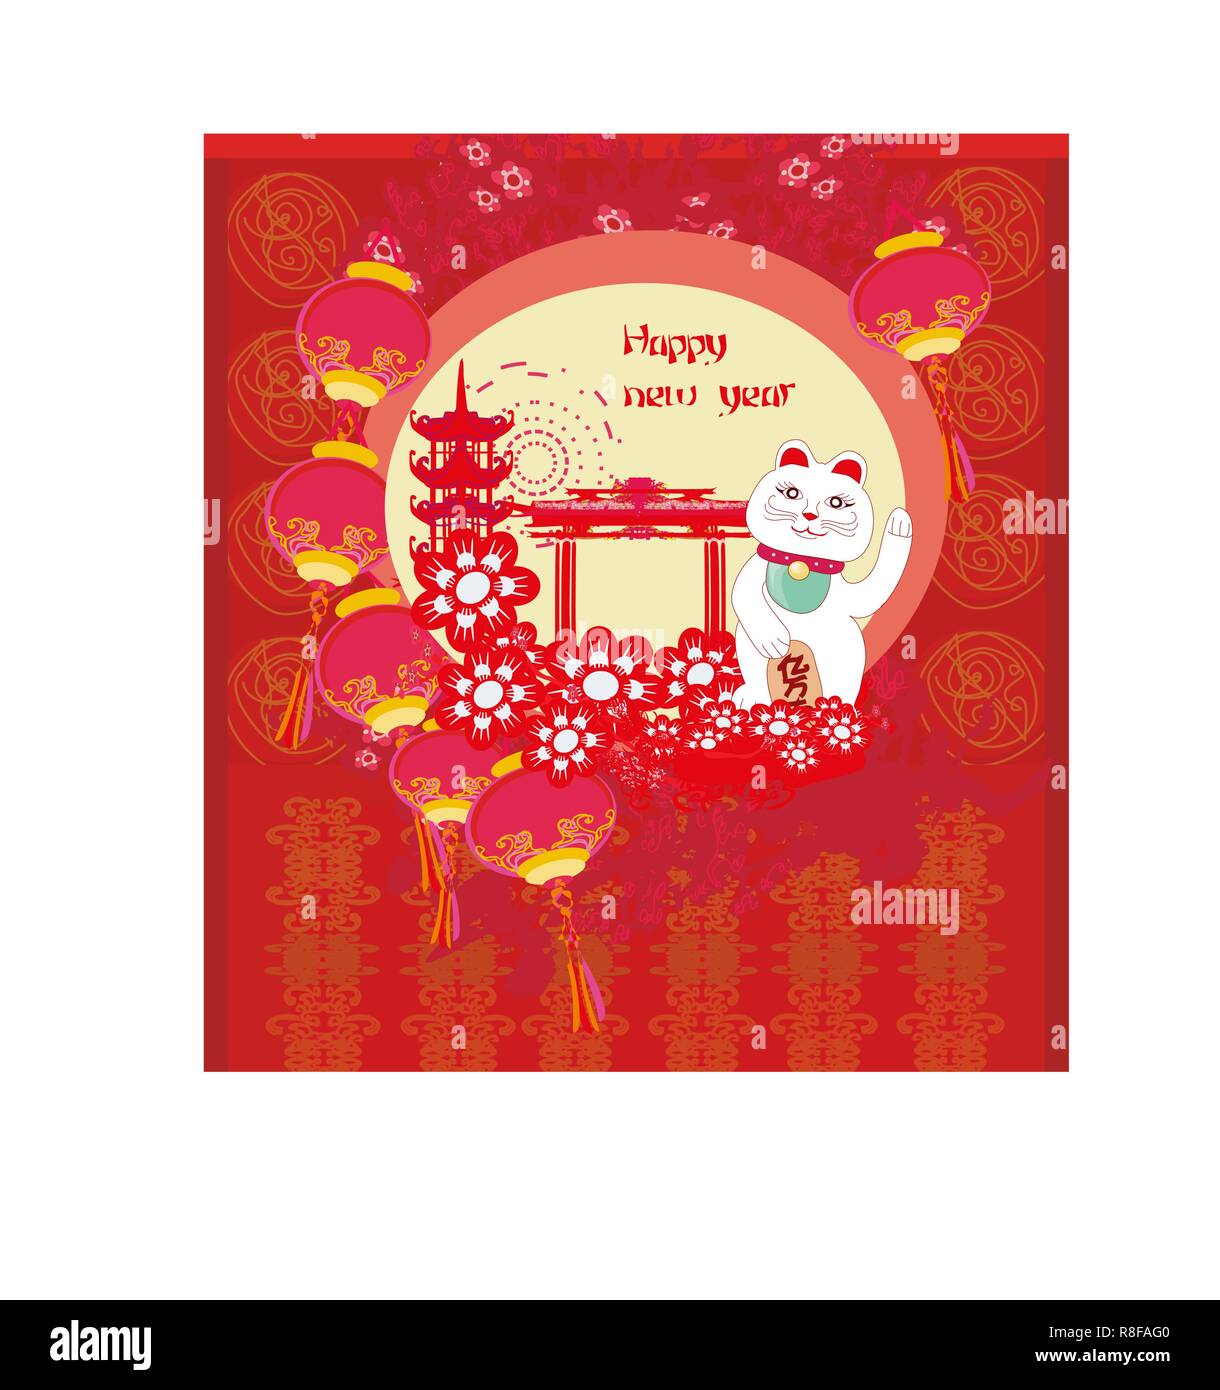 mid autumn festival for chinese new year card with maneki neko cat wishing good